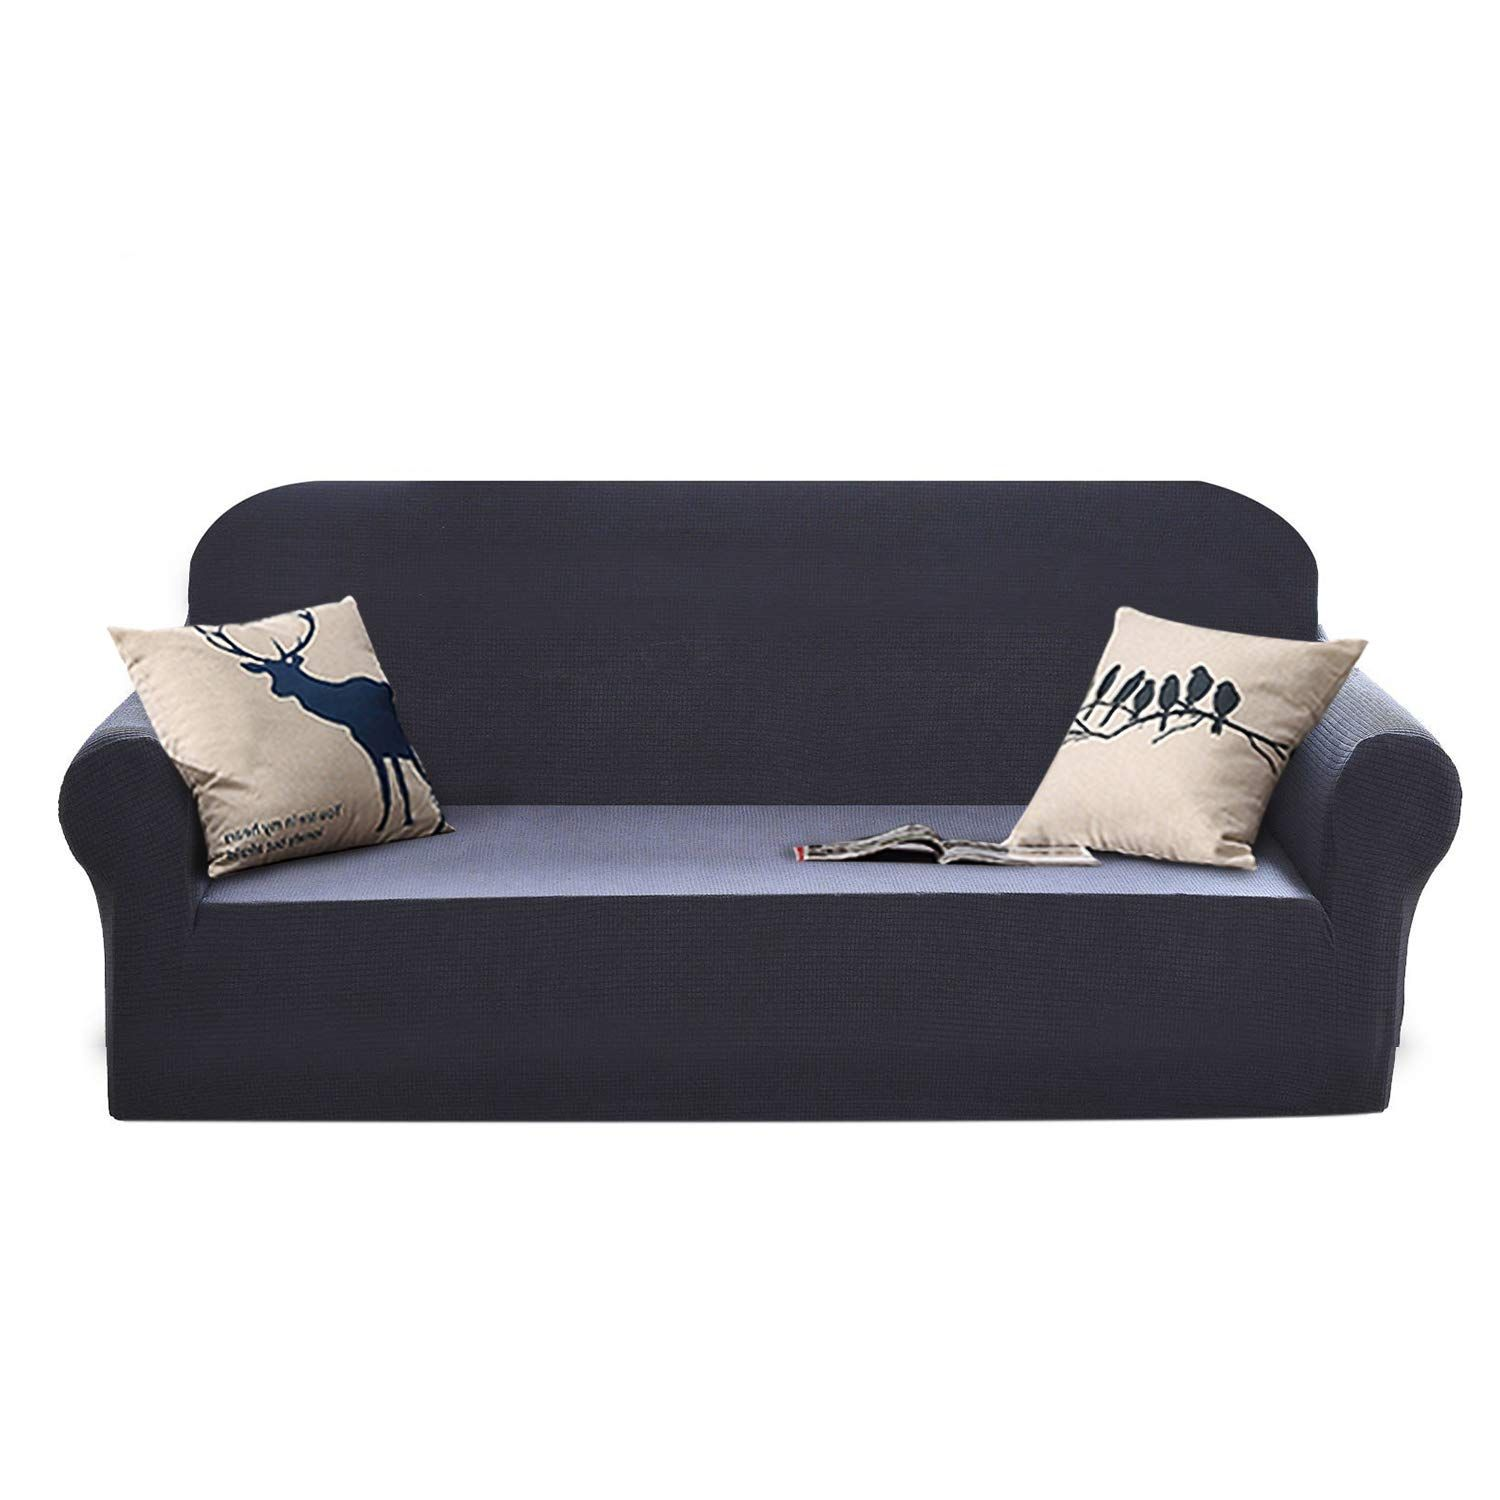 YEMYHOM High Stretch Couch Covers Jacquard Dog Sofa Covers 3 ...